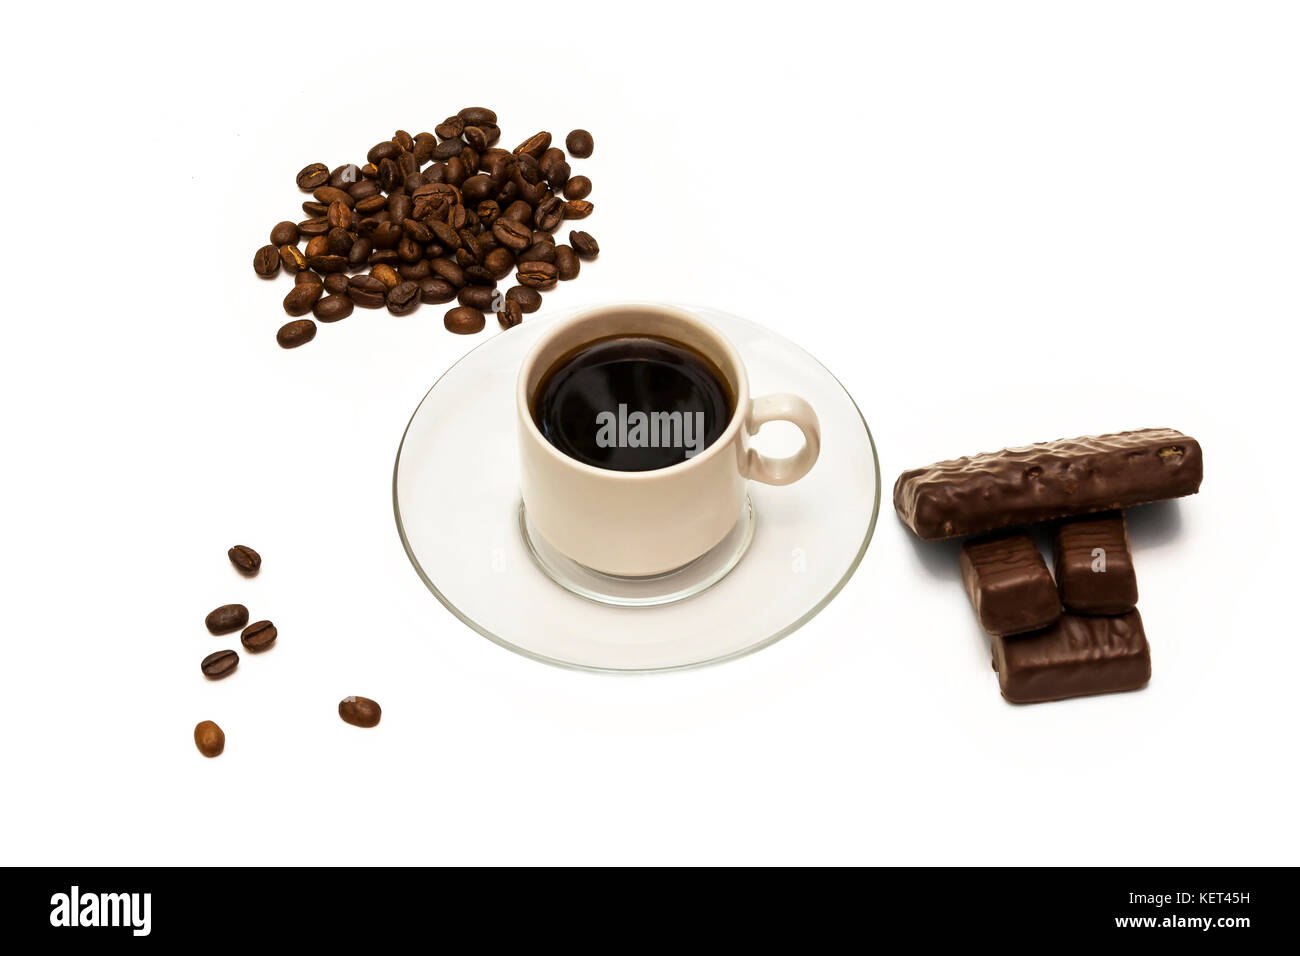 Grains of coffee, a cup of coffee and chocolate candies on a white background - Stock Image